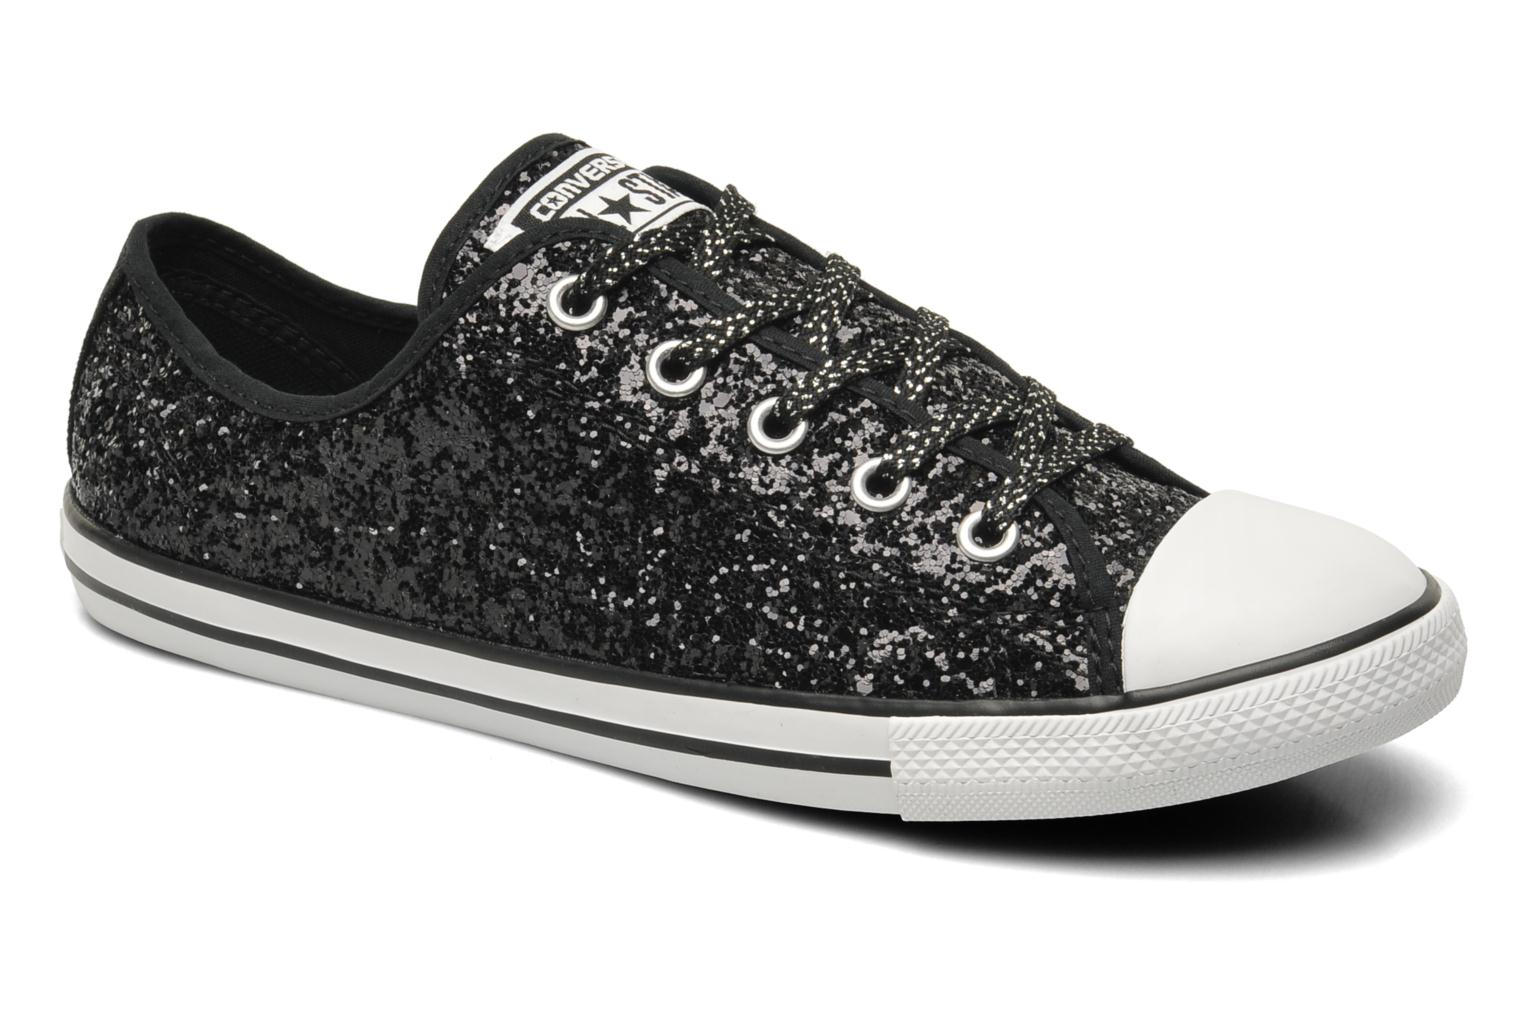 Converse All Star Dainty Canvas Ox Noir uOBe0B5x